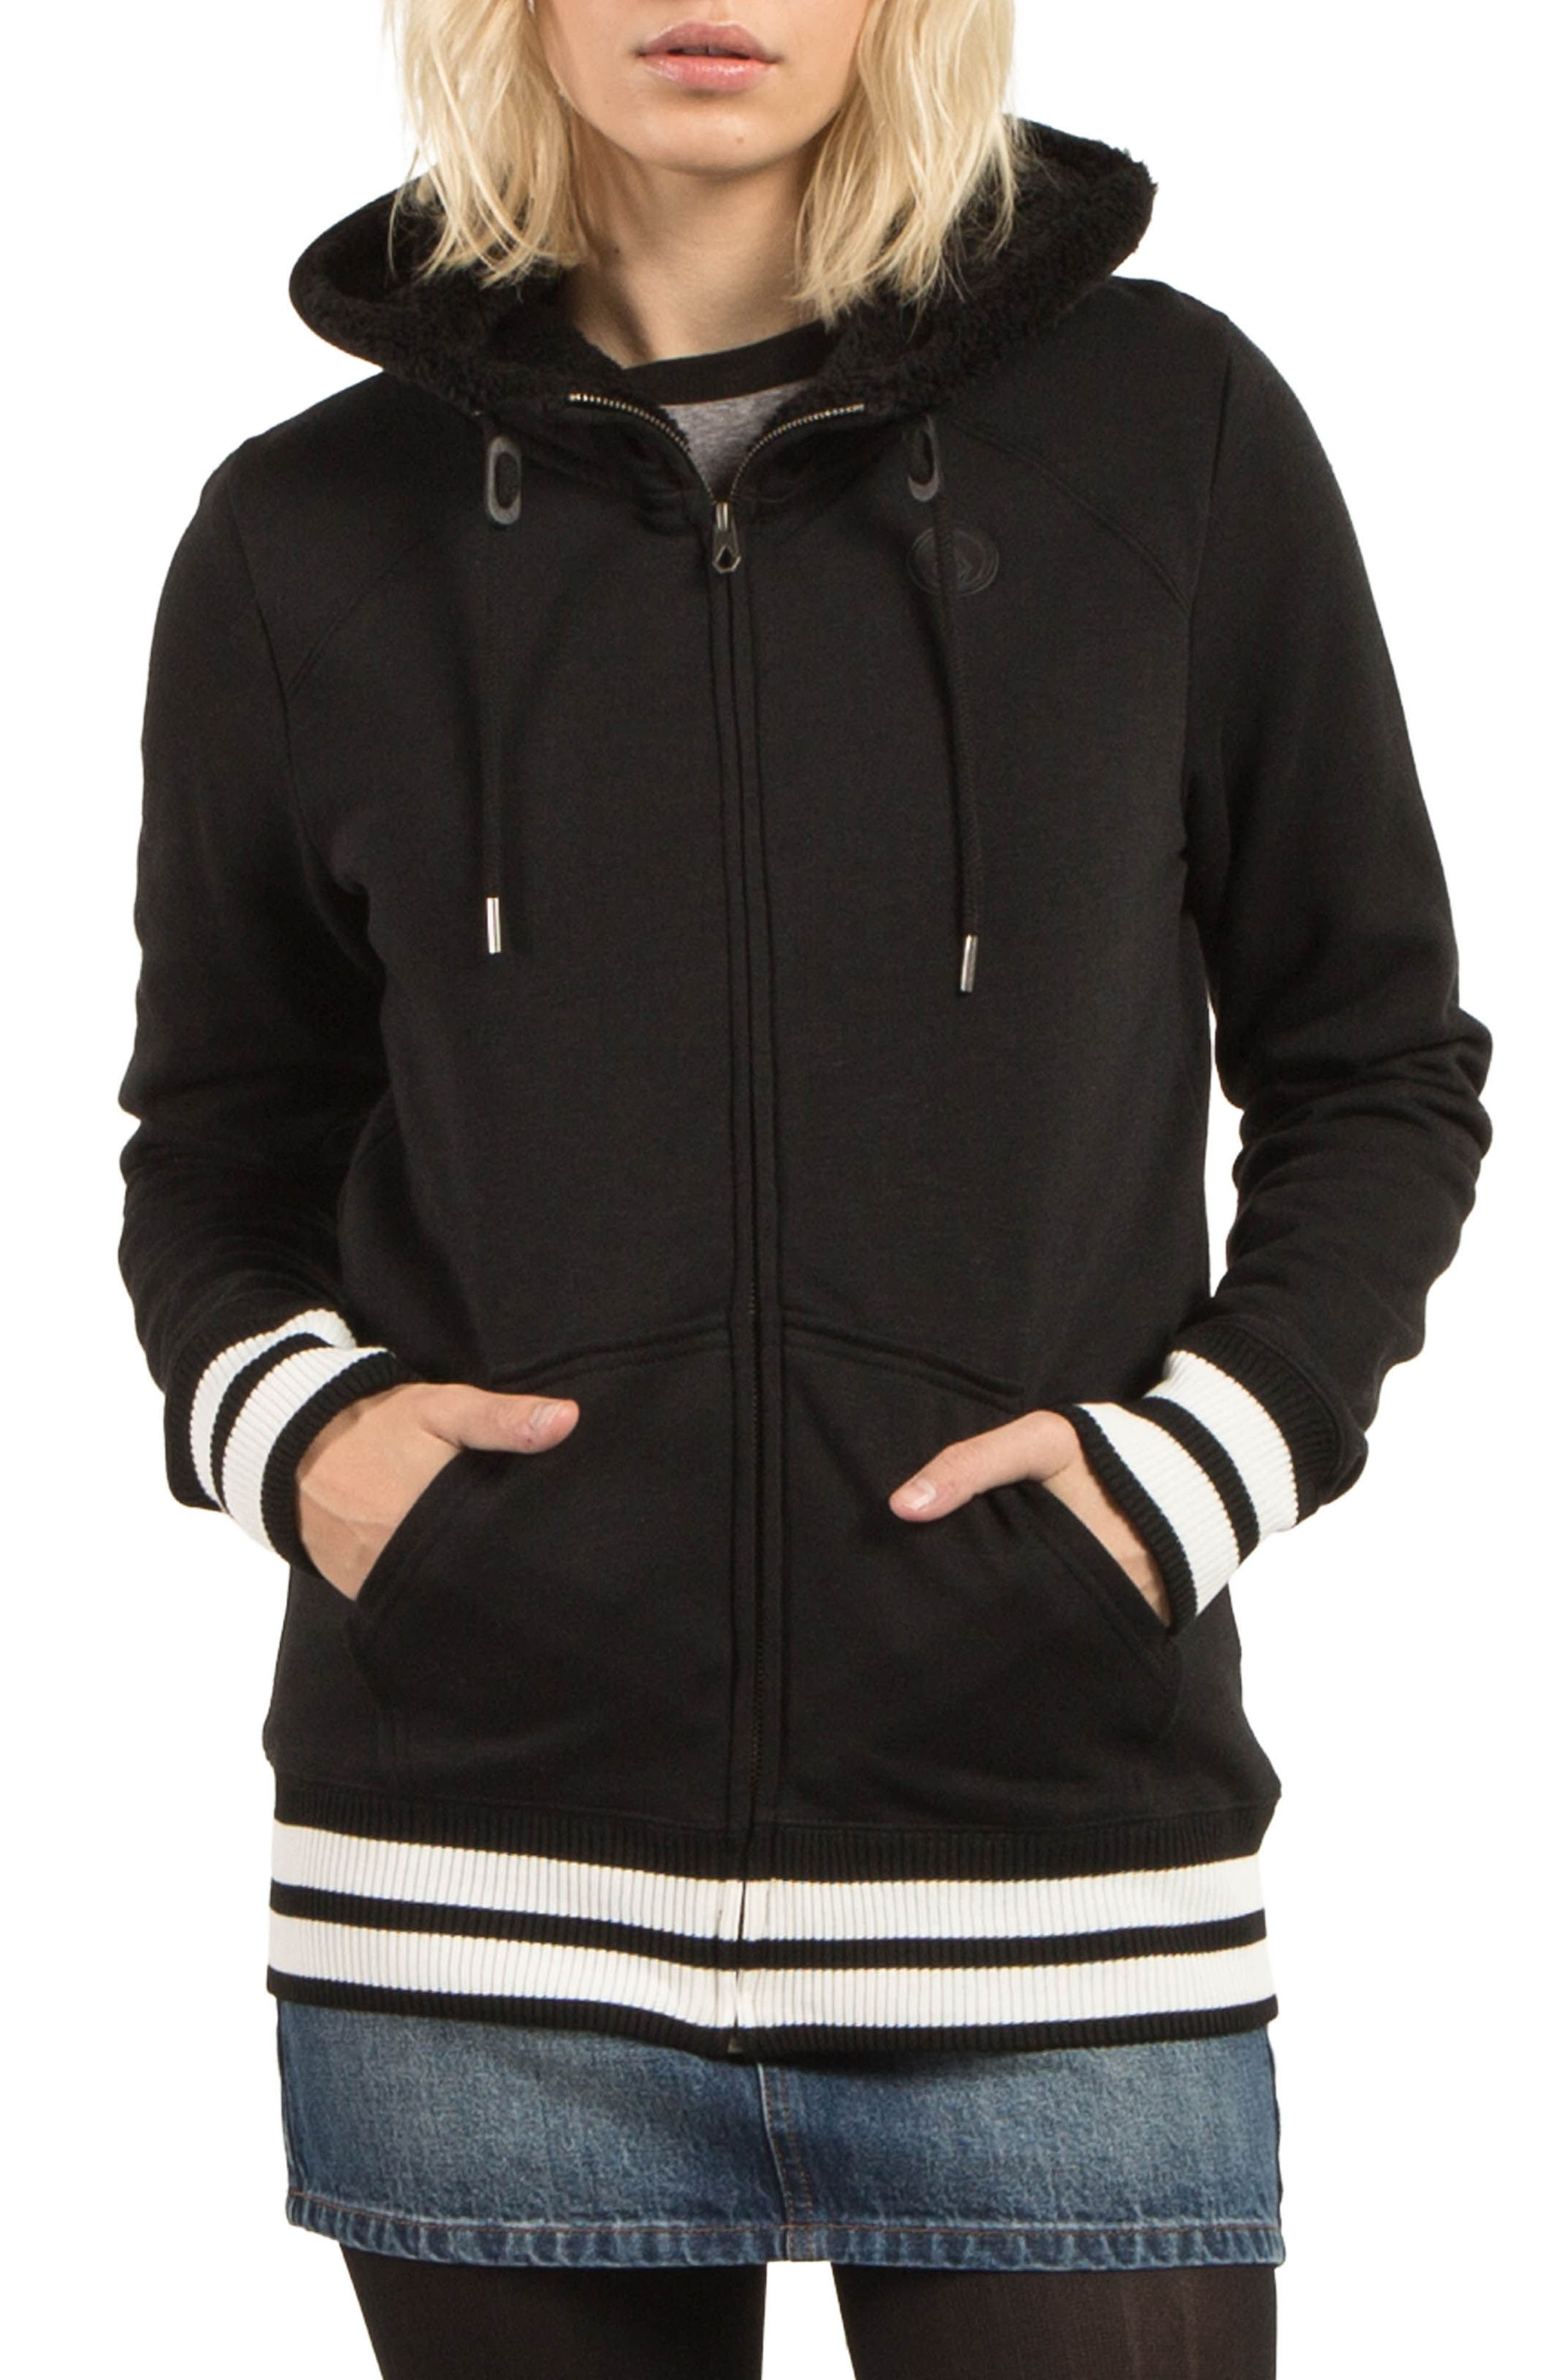 Good One Hoodie,                         Main,                         color, 001